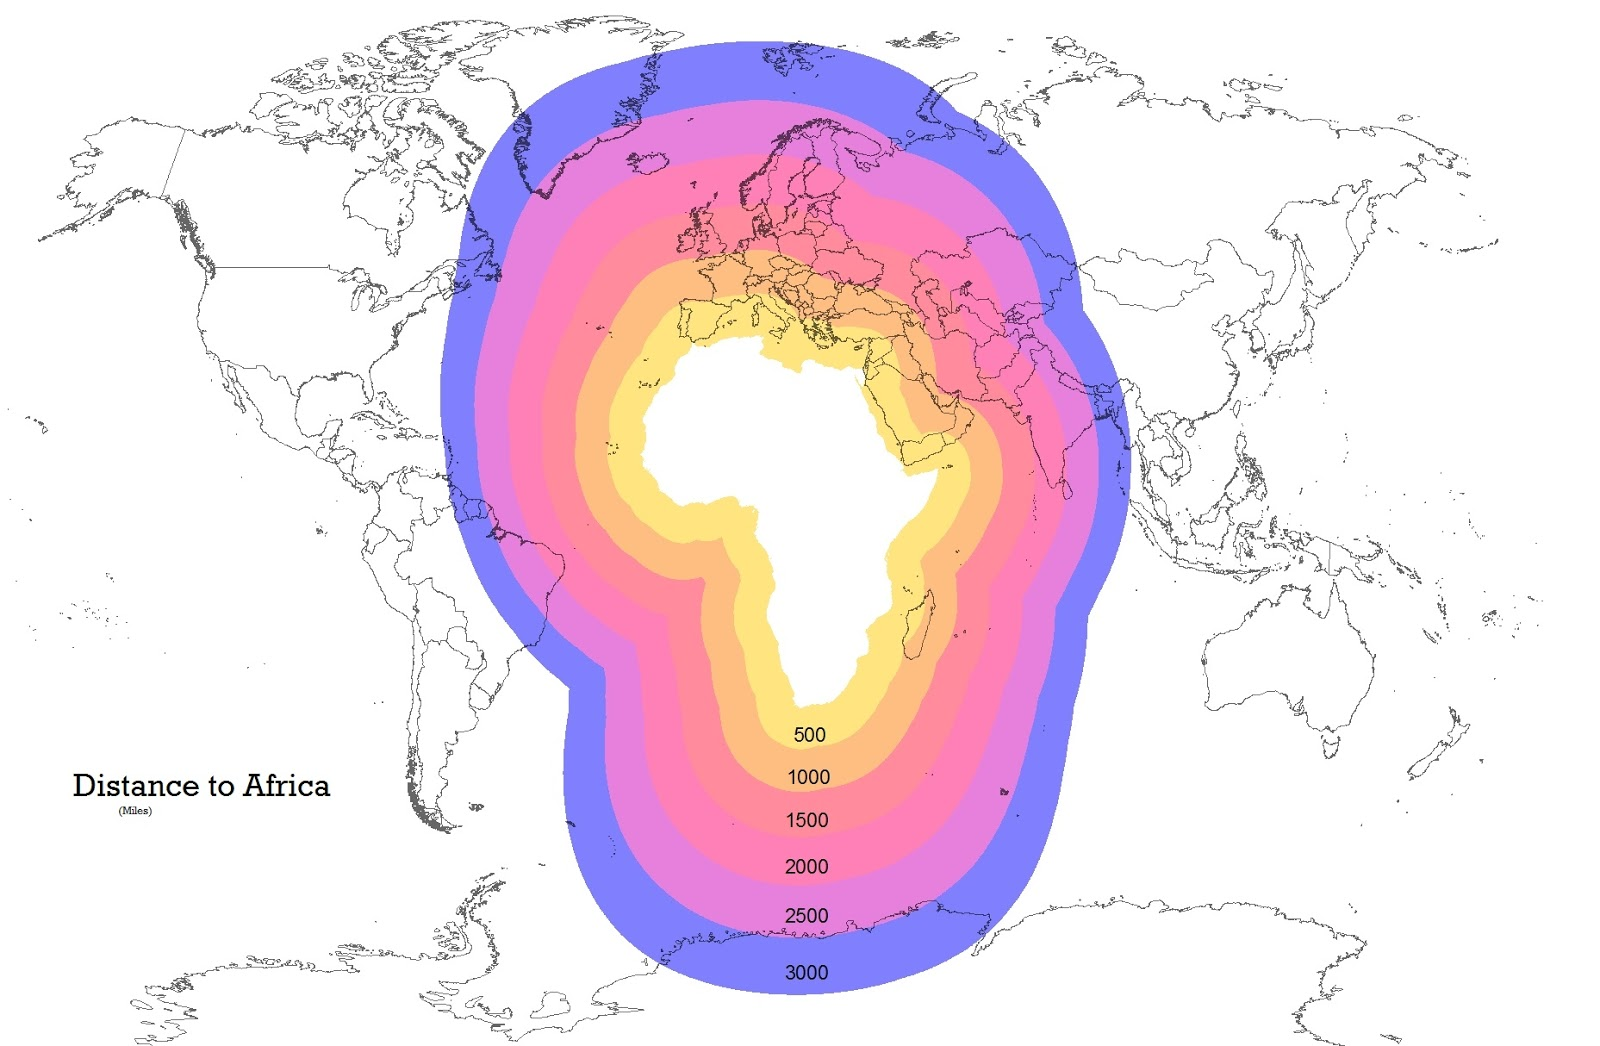 Distance to Africa